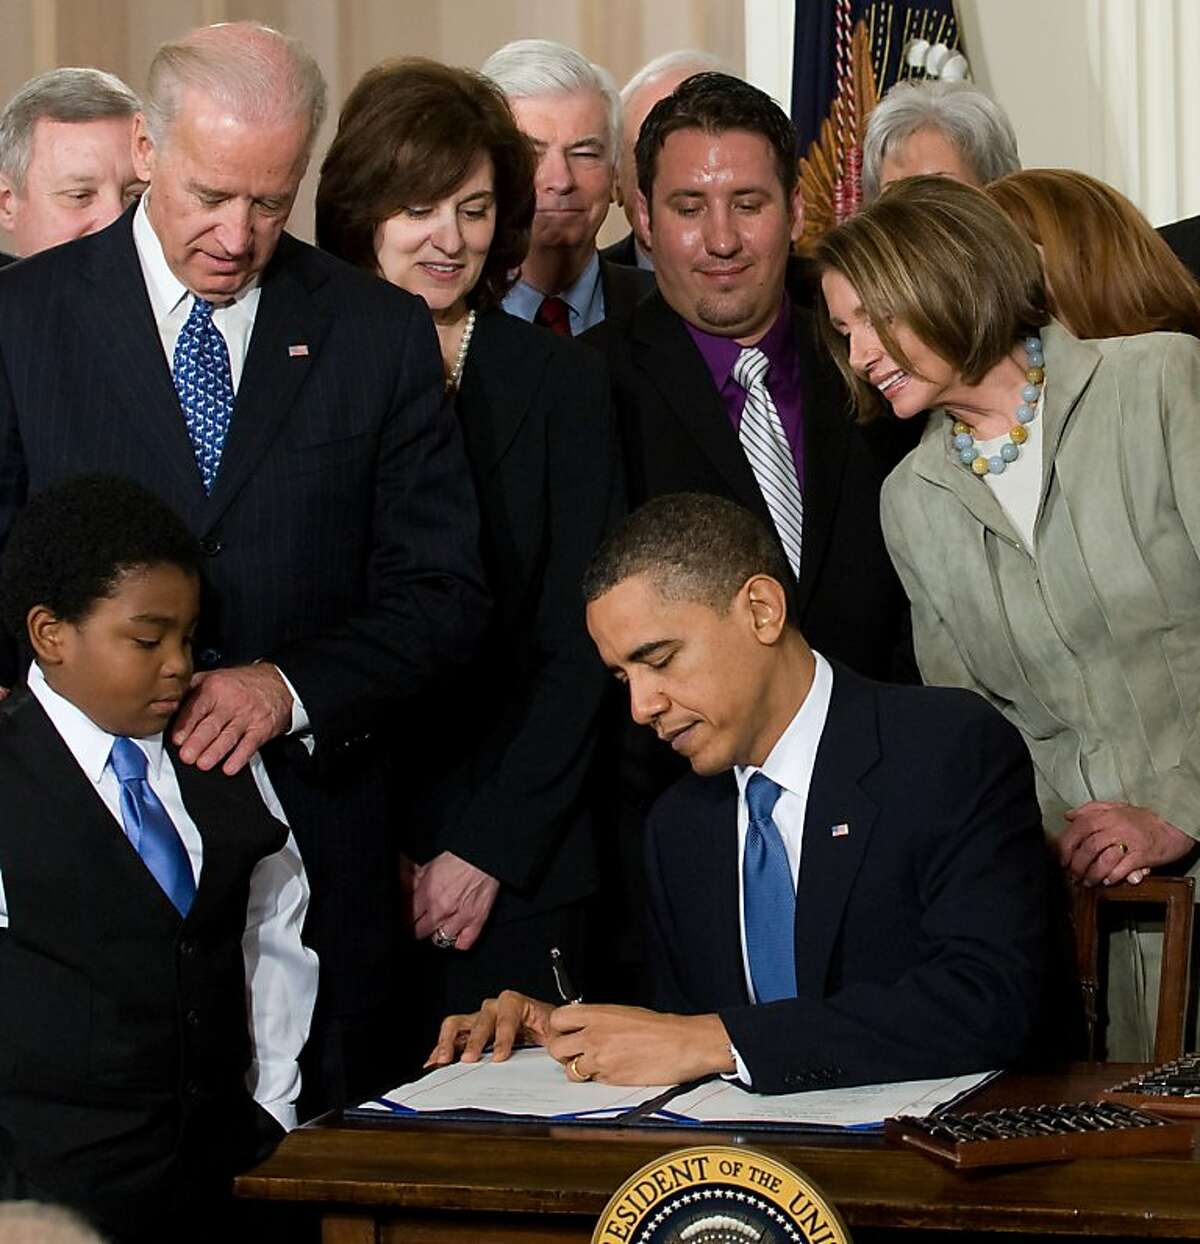 US President Barack Obama, surrounded by lawmakers and guests, signs the healthcare insurance reform legislation during a ceremony in the East Room of the White House in Washington on March 23, 2010. Obama signed into law his historic health care reform, enacting the most sweeping social legislation in decades which will ensure coverage for almost all Americans. AFP PHOTO / Saul LOEB (Photo credit should read SAUL LOEB/AFP/Getty Images) Ran on: 03-24-2010 President Obama signs the health care overhaul bill surrounded by officials, guests and Marcelas Owens, 11, of Seattle, who began campaigning for the bill after his uninsured mother died of pulmonary hypertension. Ran on: 03-24-2010 President Obama signs the health care overhaul bill surrounded by officials, guests and Marcelas Owens, 11, of Seattle, who began campaigning for the bill after his uninsured mother died of pulmonary hypertension. Ran on: 04-04-2010 President Obama signs the health care insurance reform bill in the East Room of the White House. At left is Marcelas Owens, 11, of Seattle, who began campaigning for the bill after his uninsured mother died of hypertension. Ran on: 04-04-2010 President Obama signs the health care insurance reform bill in the East Room of the White House. At left is Marcelas Owens, 11, of Seattle, who began campaigning for the bill after his uninsured mother died of hypertension. Ran on: 12-26-2010 President Obama and House Speaker Nancy Pelsoi passed health care reform, but paid for it in the November election. Ran on: 12-26-2010 President Obama and House Speaker Nancy Pelsoi passed health care reform, but paid for it in the November election. Ran on: 03-20-2011 President Obama signed the health care overhaul legislation last March. The bills proponents said it would increase access to the system for...